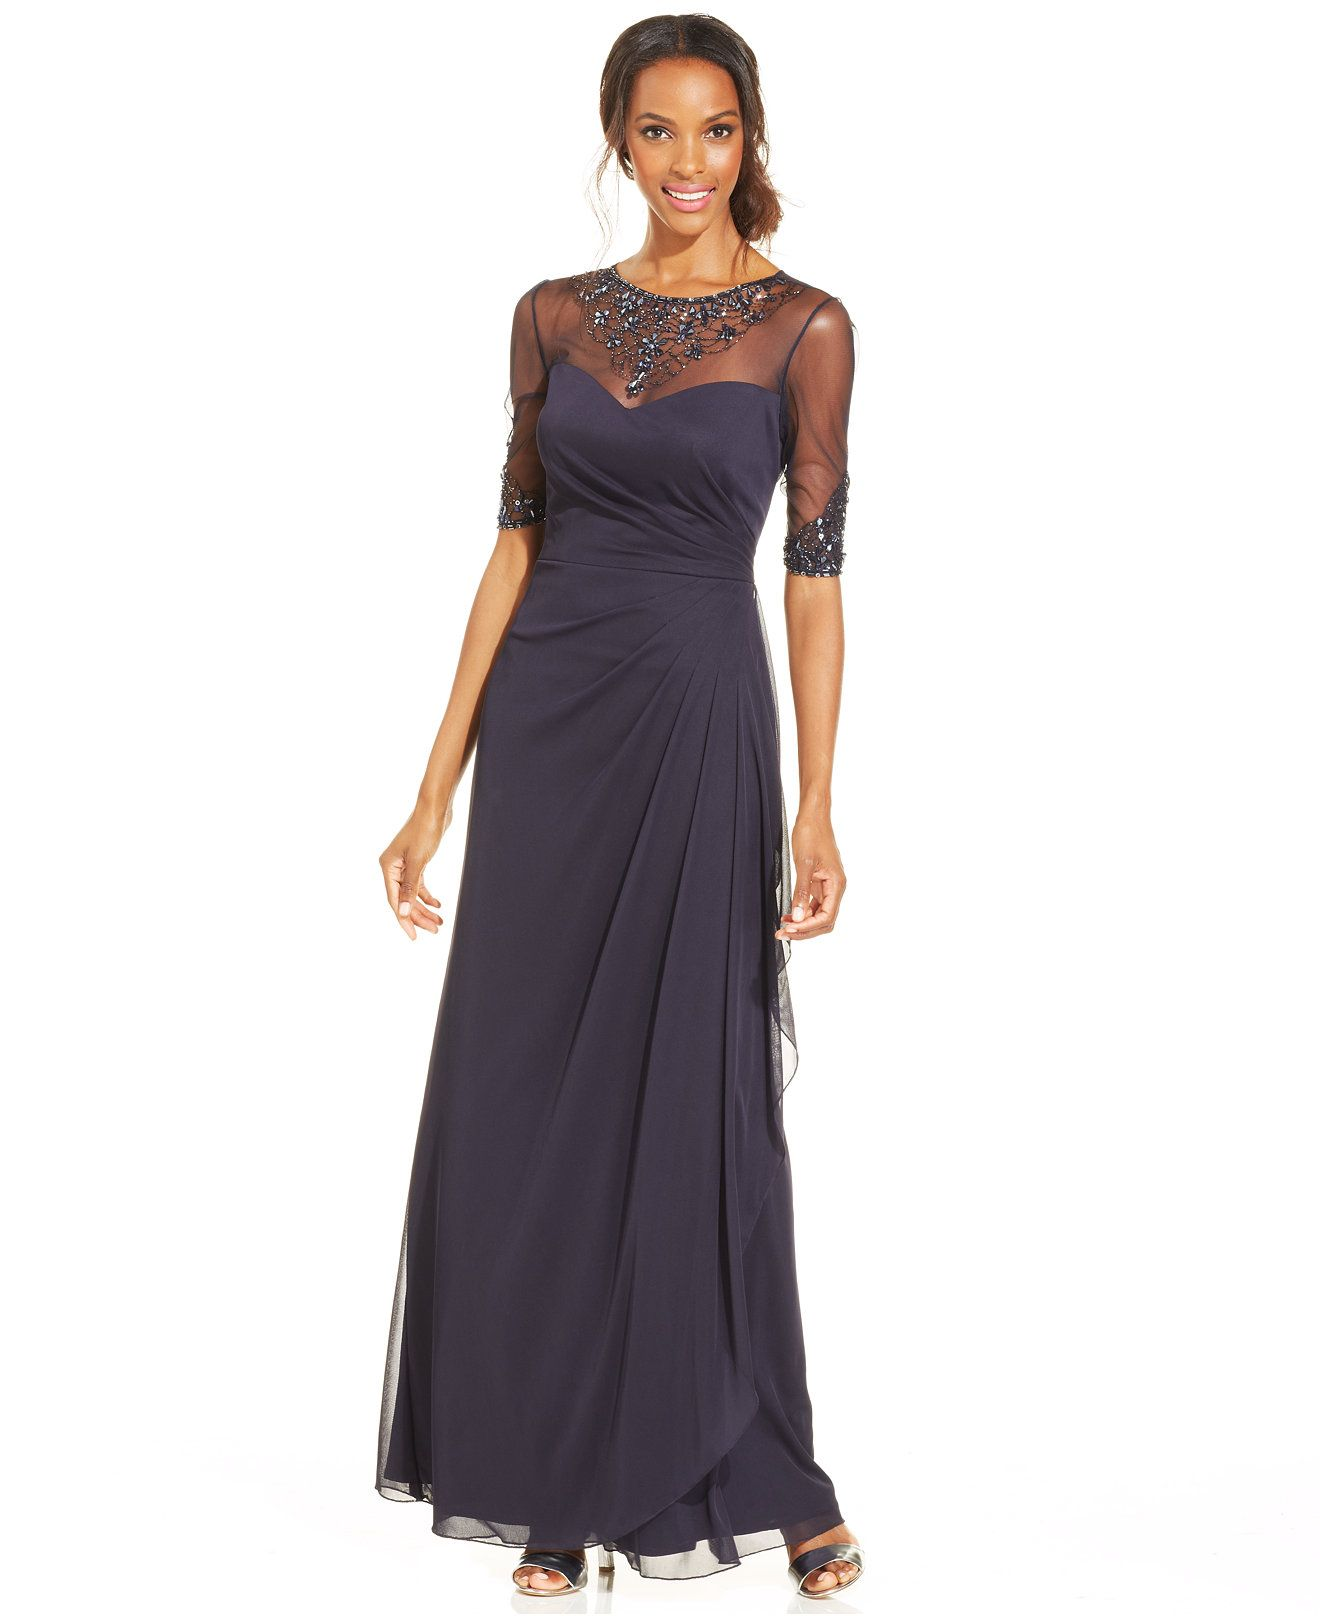 Patra Embellished Illusion Draped Gown - Dresses - Women - Macy's ...